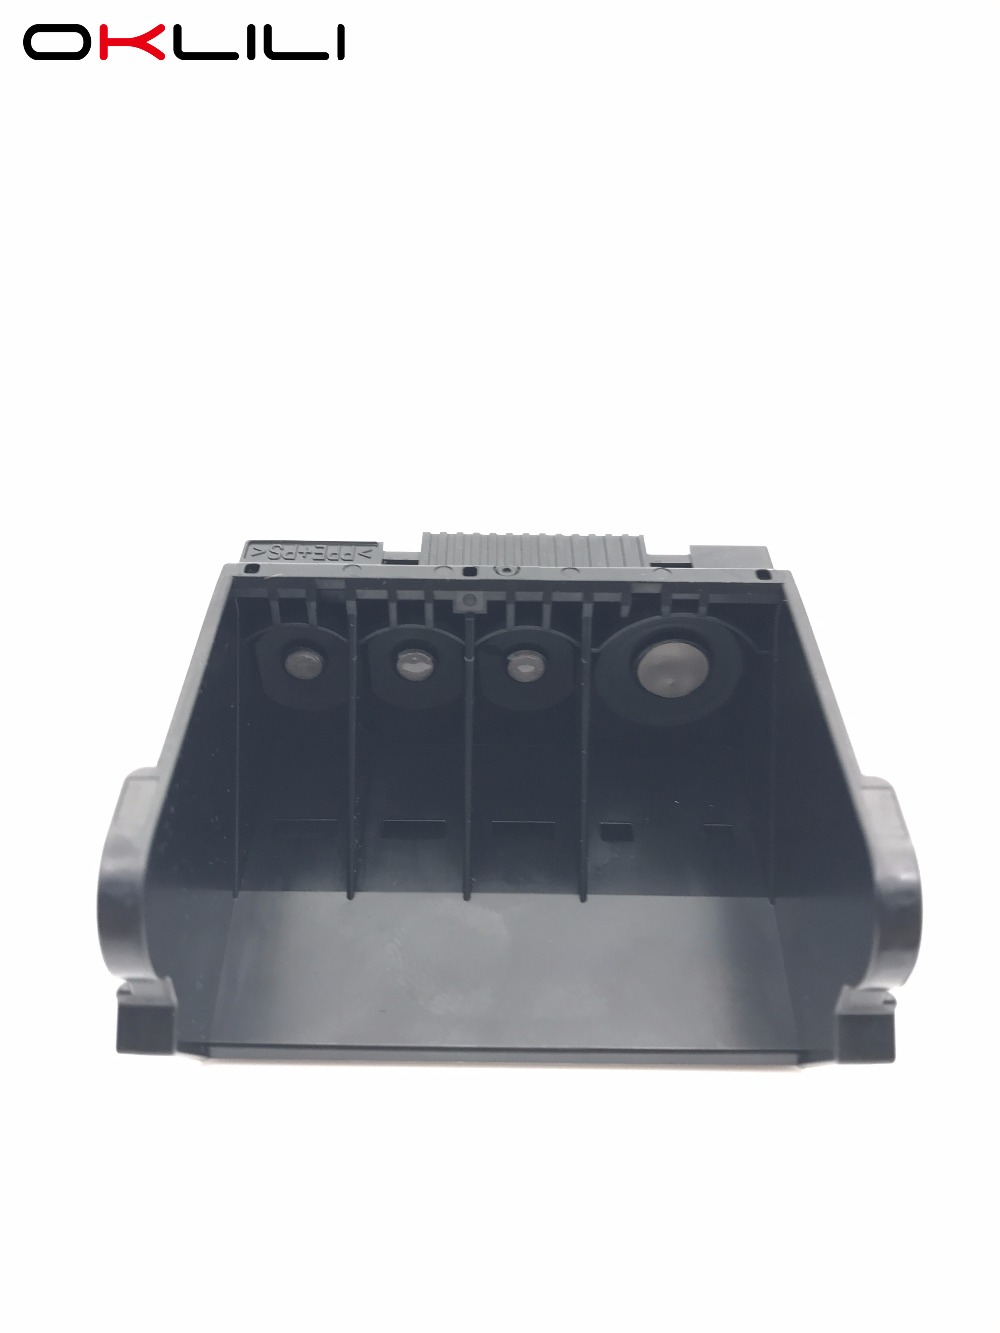 OKLILI ORIGINAL QY6-0070 QY6-0070-000 Printhead Print Head Printer Head for Canon MP510 MP520 MX700 iP3300 iP3500 qy6 0069 qy6 0069 qy60069 qy6 0069 000 printhead print head printer head remanufactured for canon mini260 mini320